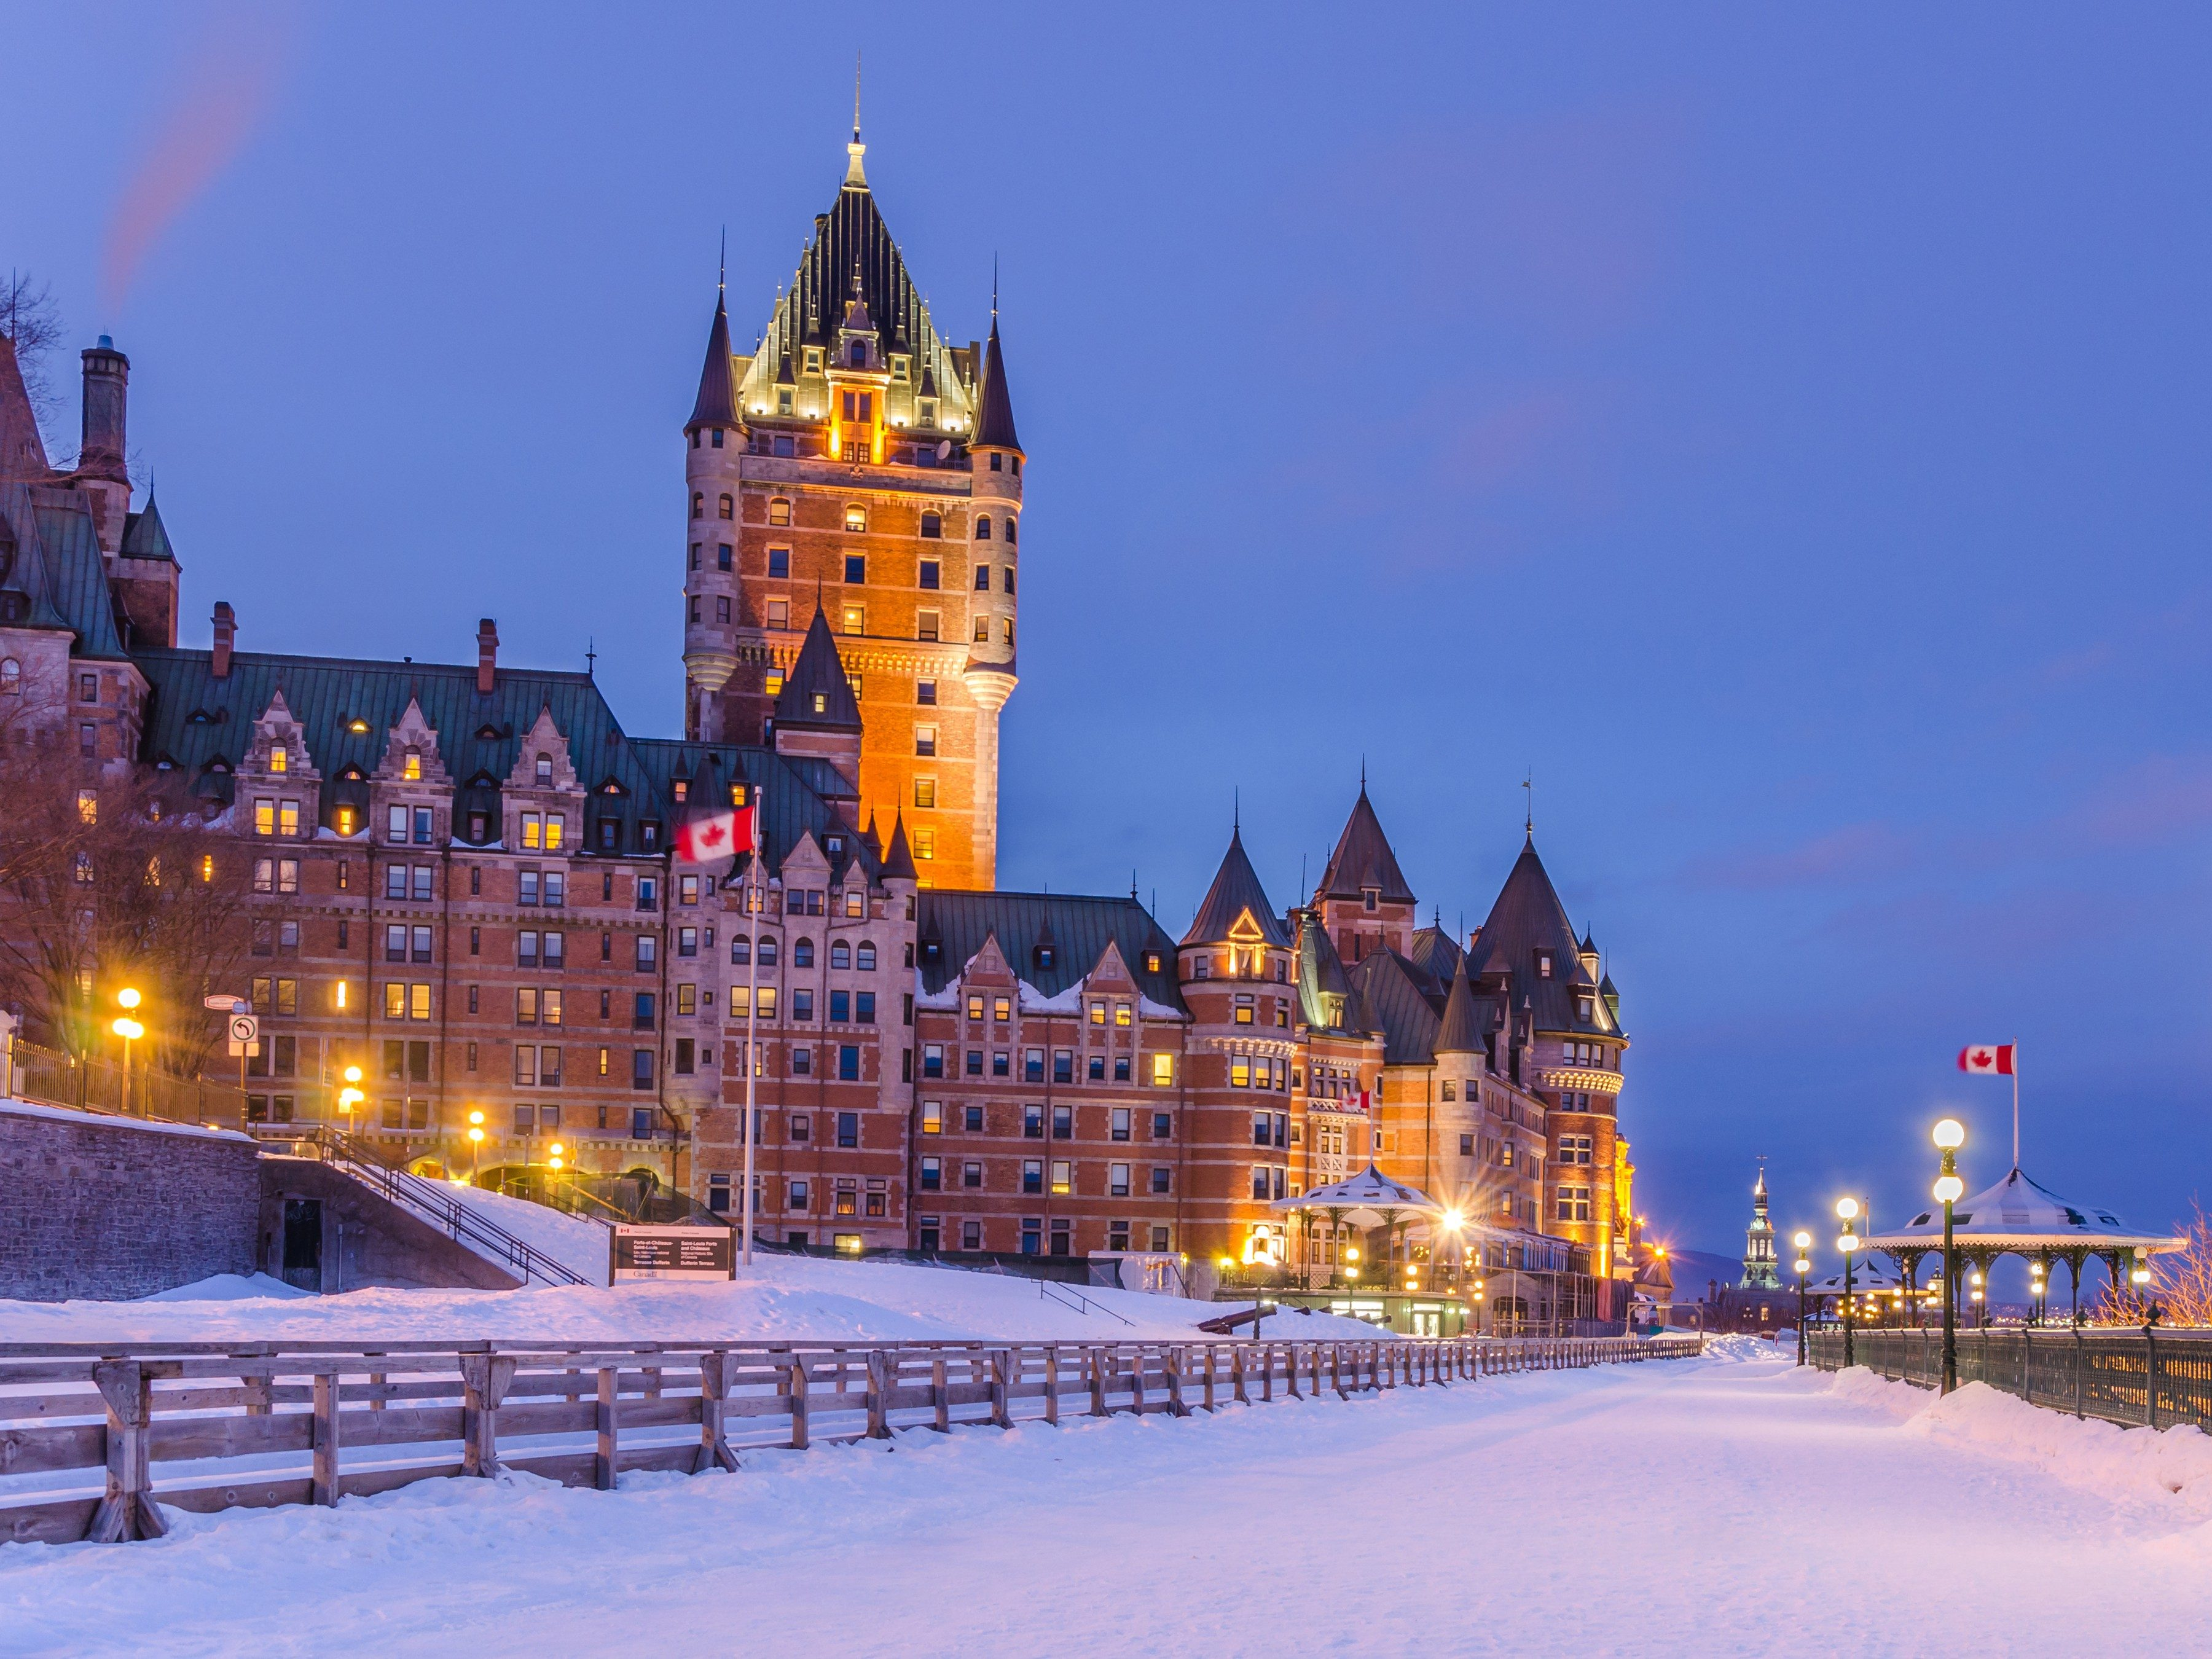 Snowiest Destinations: Quebec City, Quebec